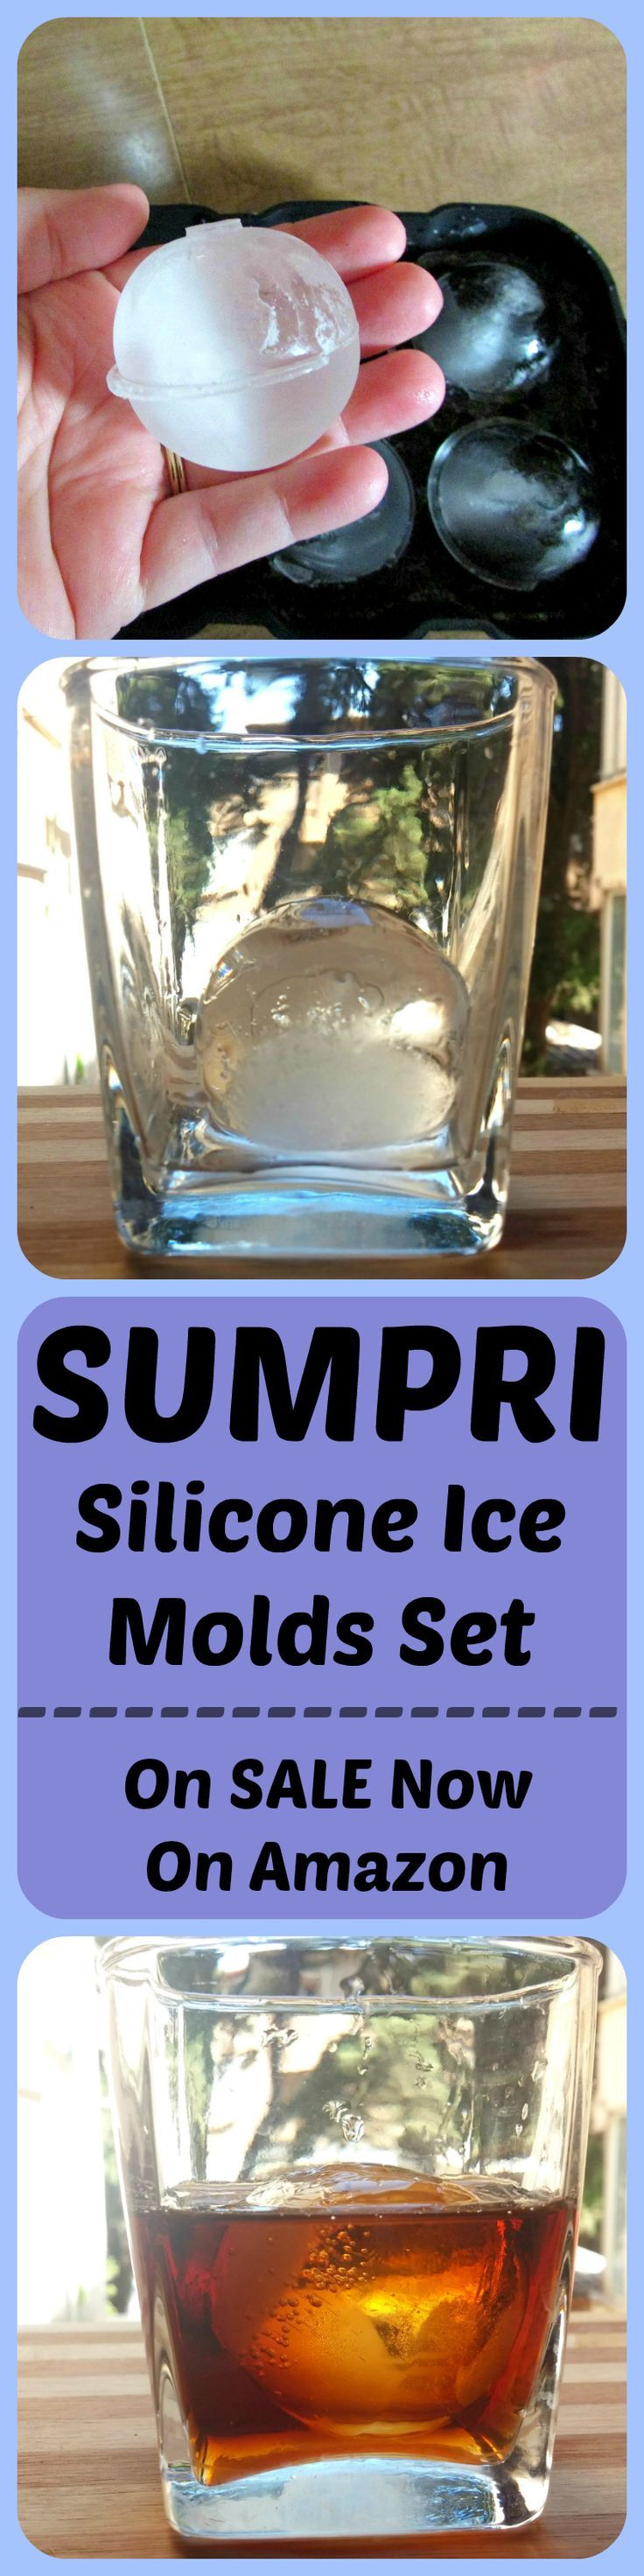 Make beautiful looking drinks using SUMPRI  Silicone Ice Molds set. The ONLY TWO-COLOR Set Available. Press this link Get your set now: amzn.to/29W29XL #sumpri #sphere #mold #ice #cube #tray #ball #maker